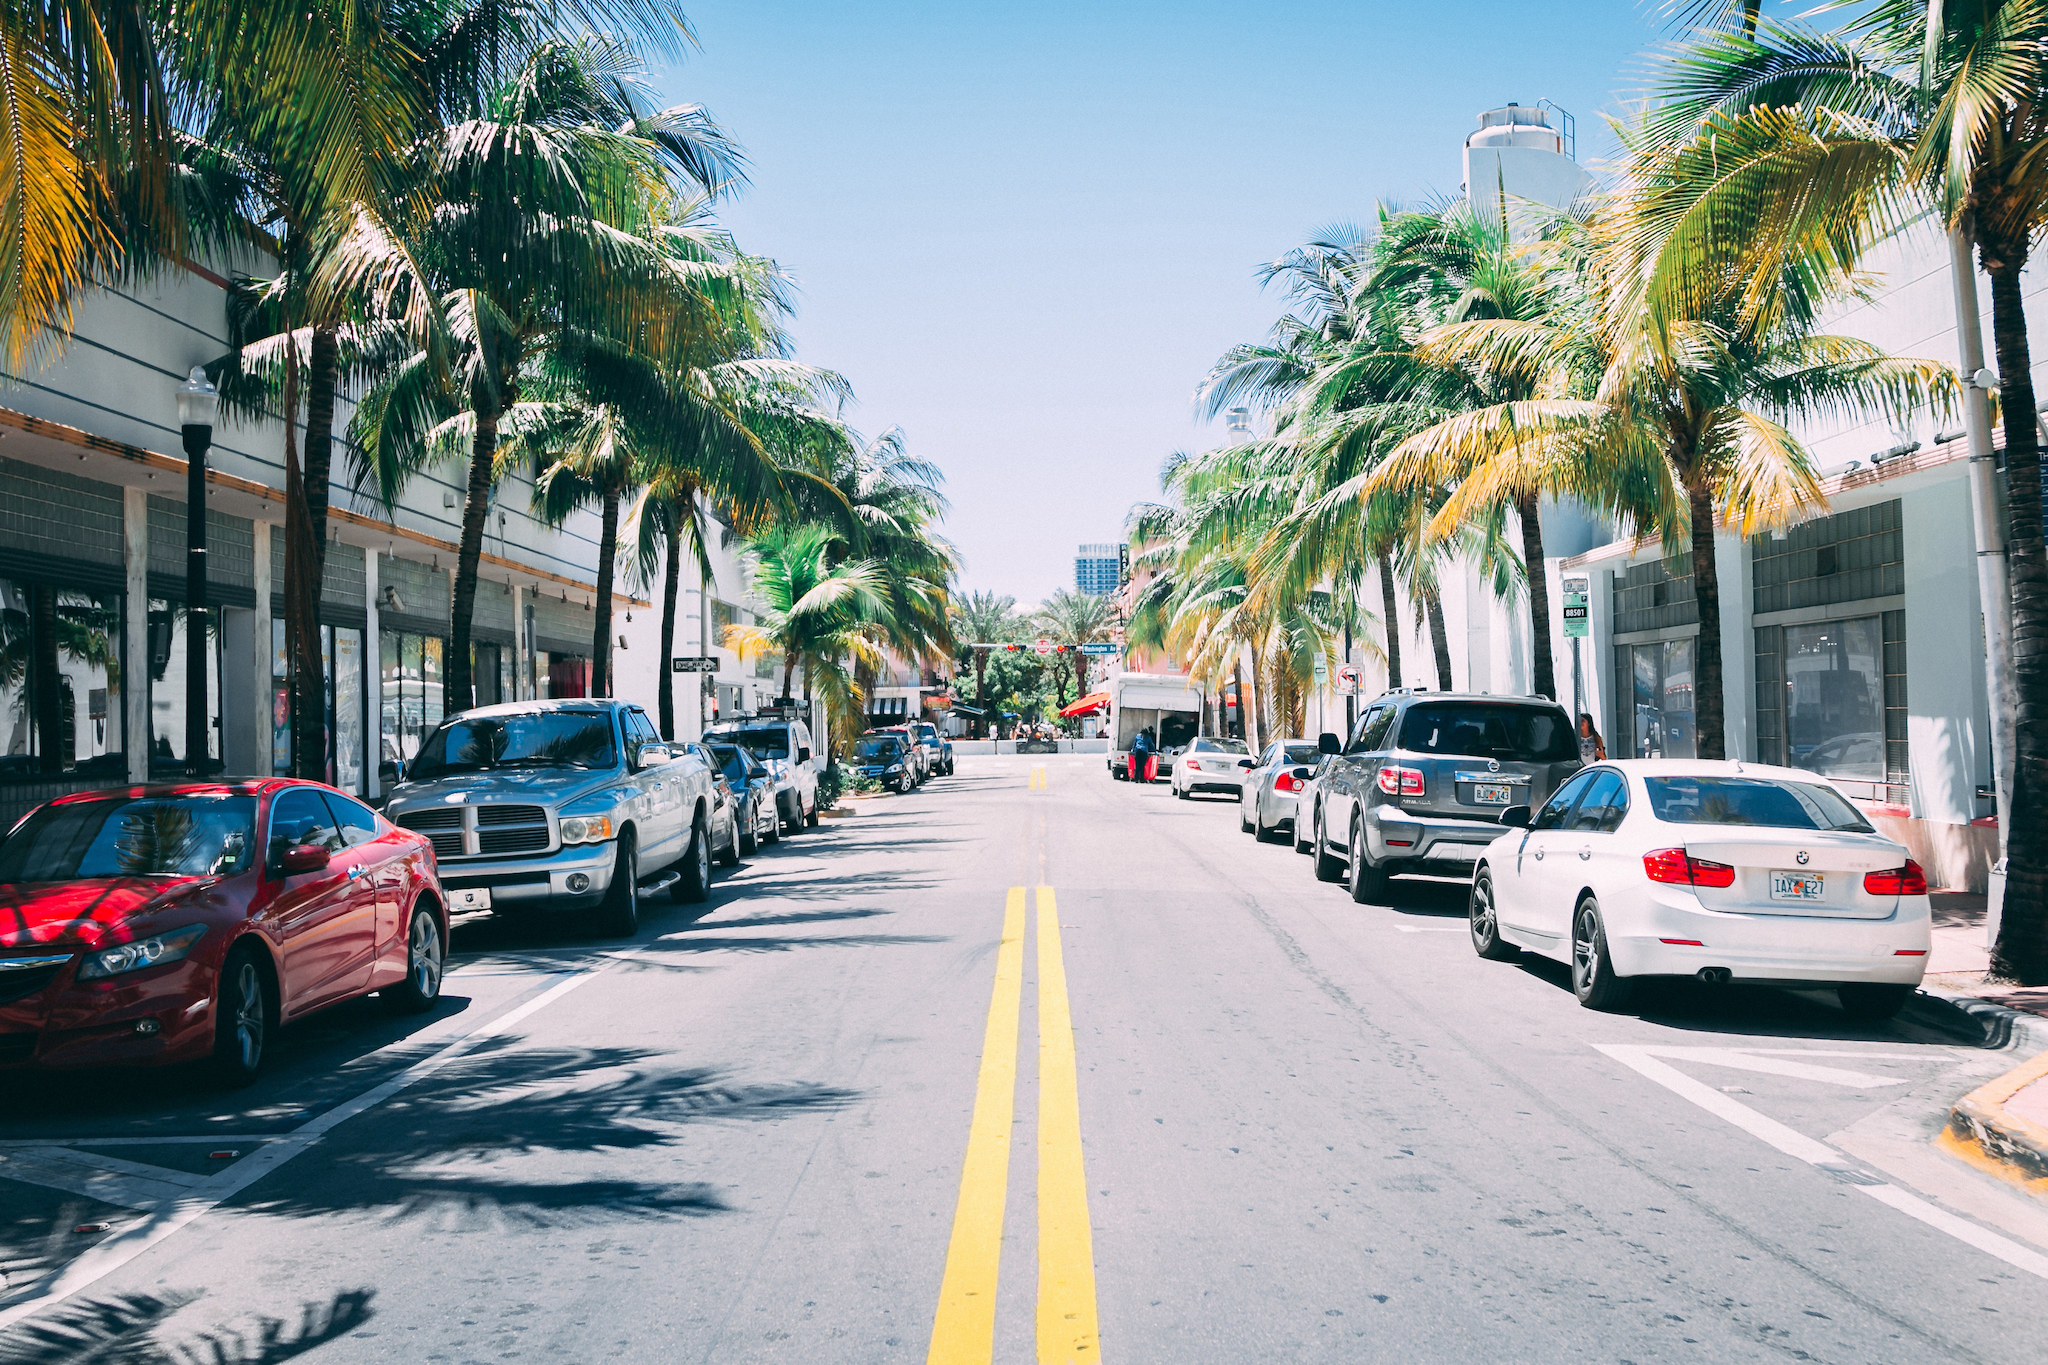 miami beach parking tips and tricks you shouldn't forget in 2019